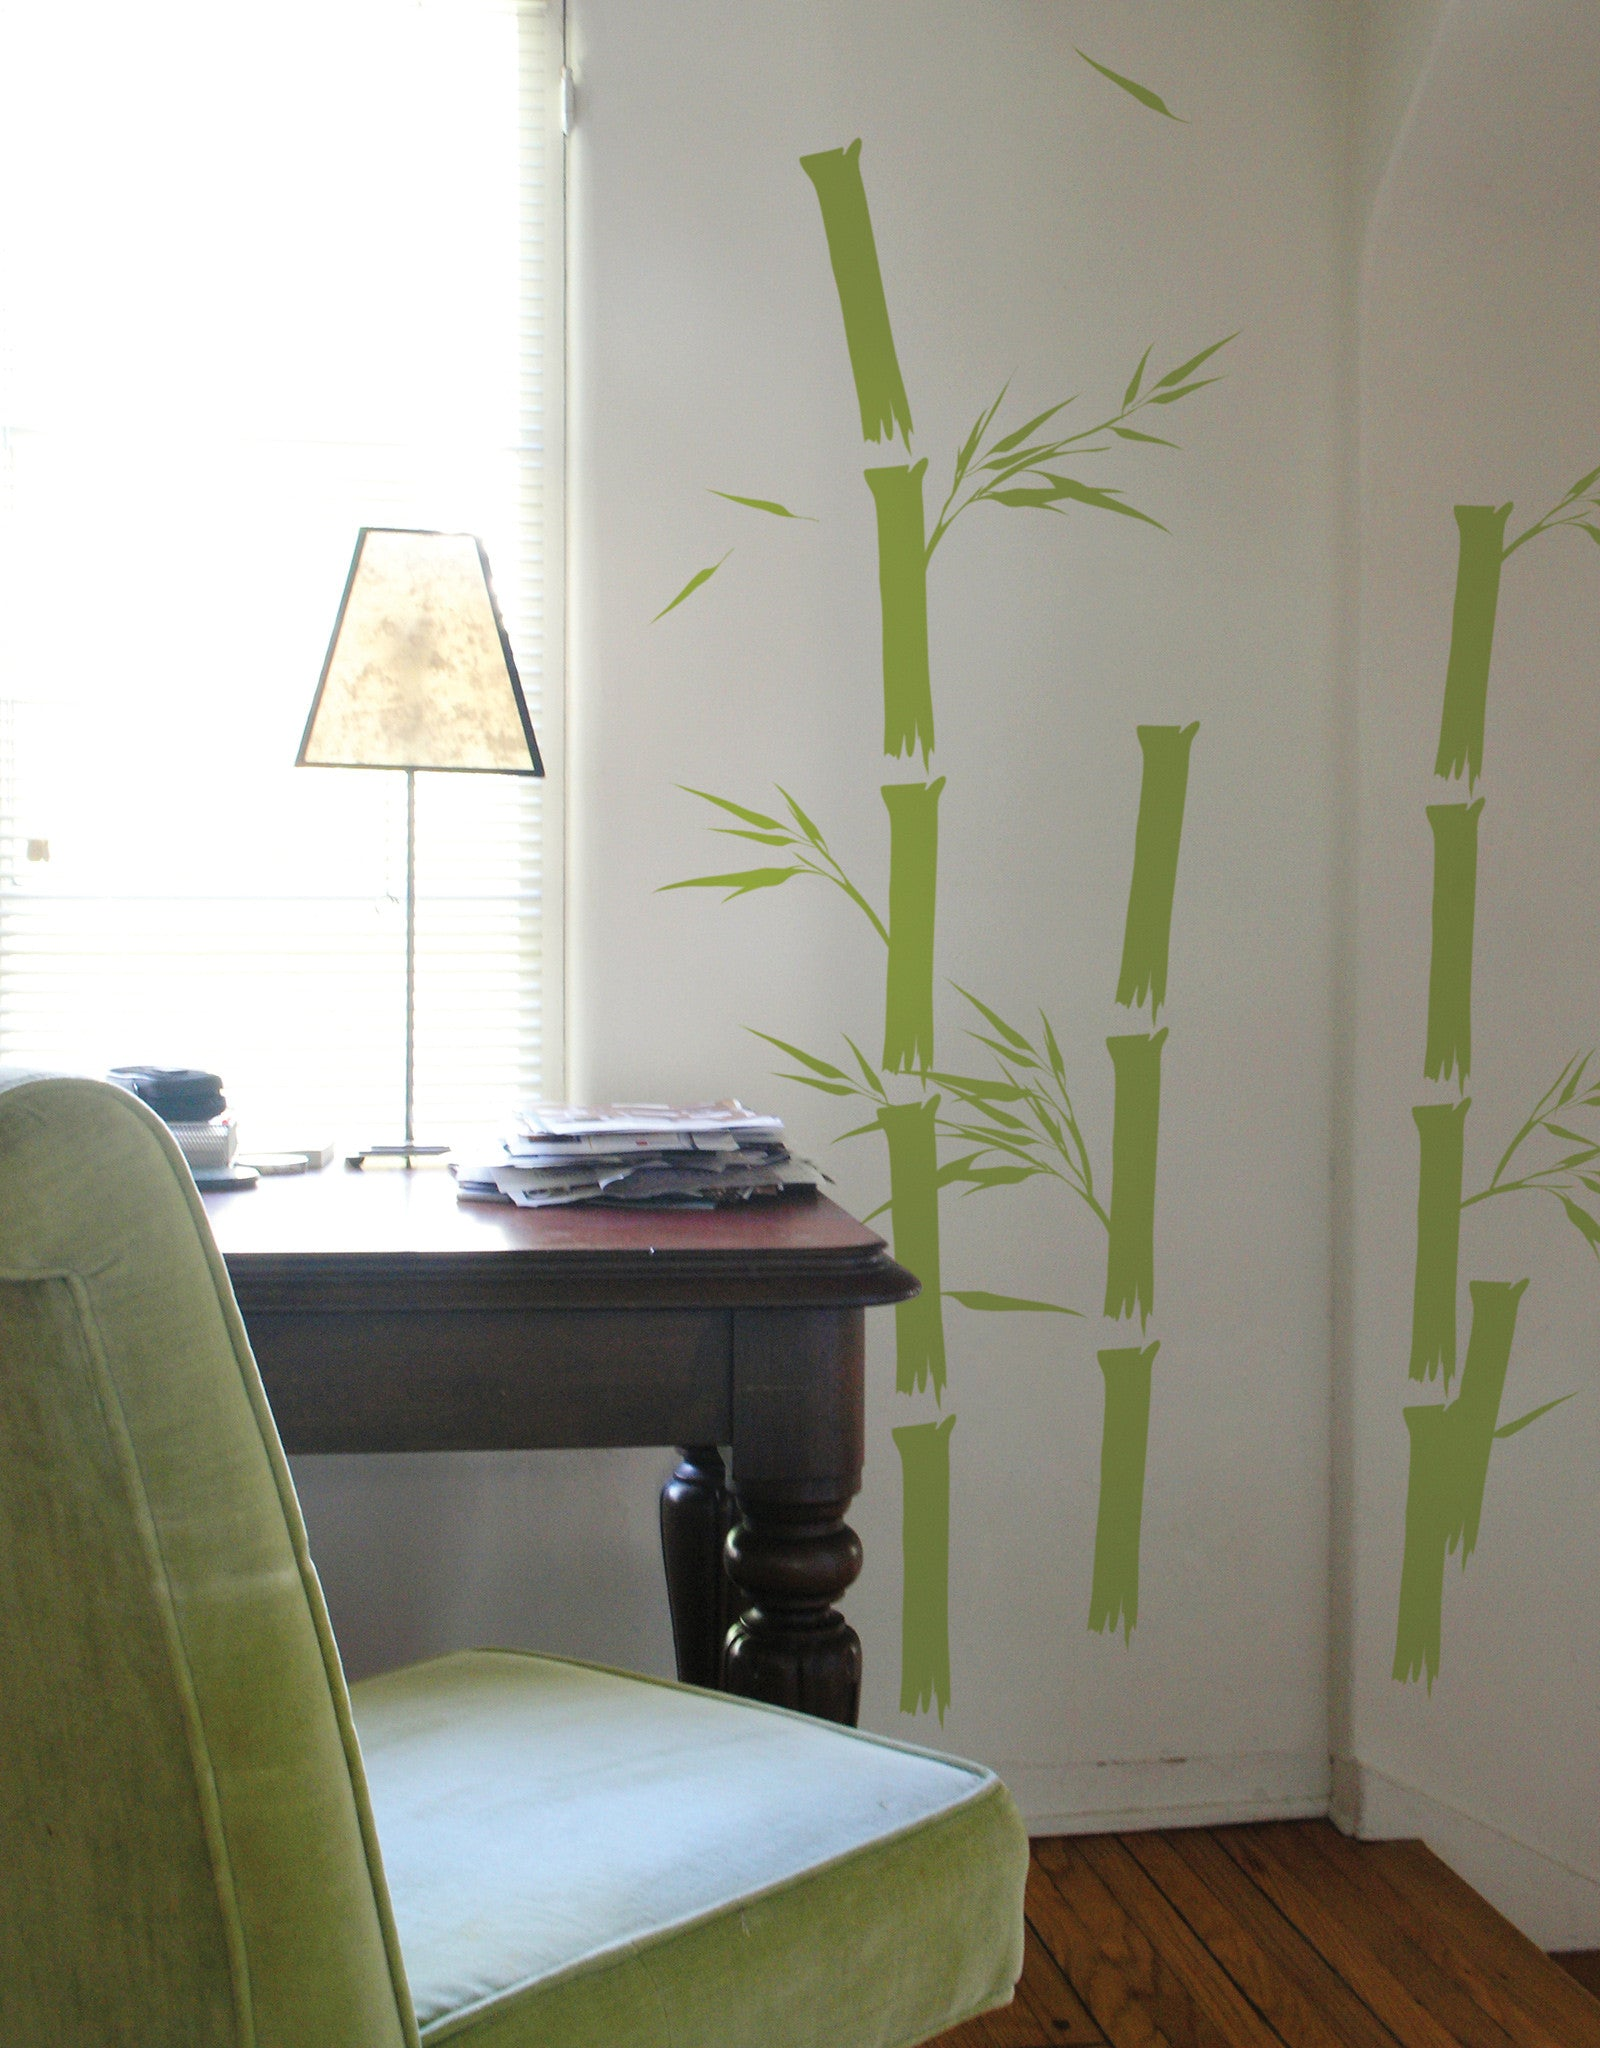 Home Wall Graphics Bamboo. Bamboo & Bamboo Vinyl Wall Decals | Bamboo Decal Wall Art | Blik